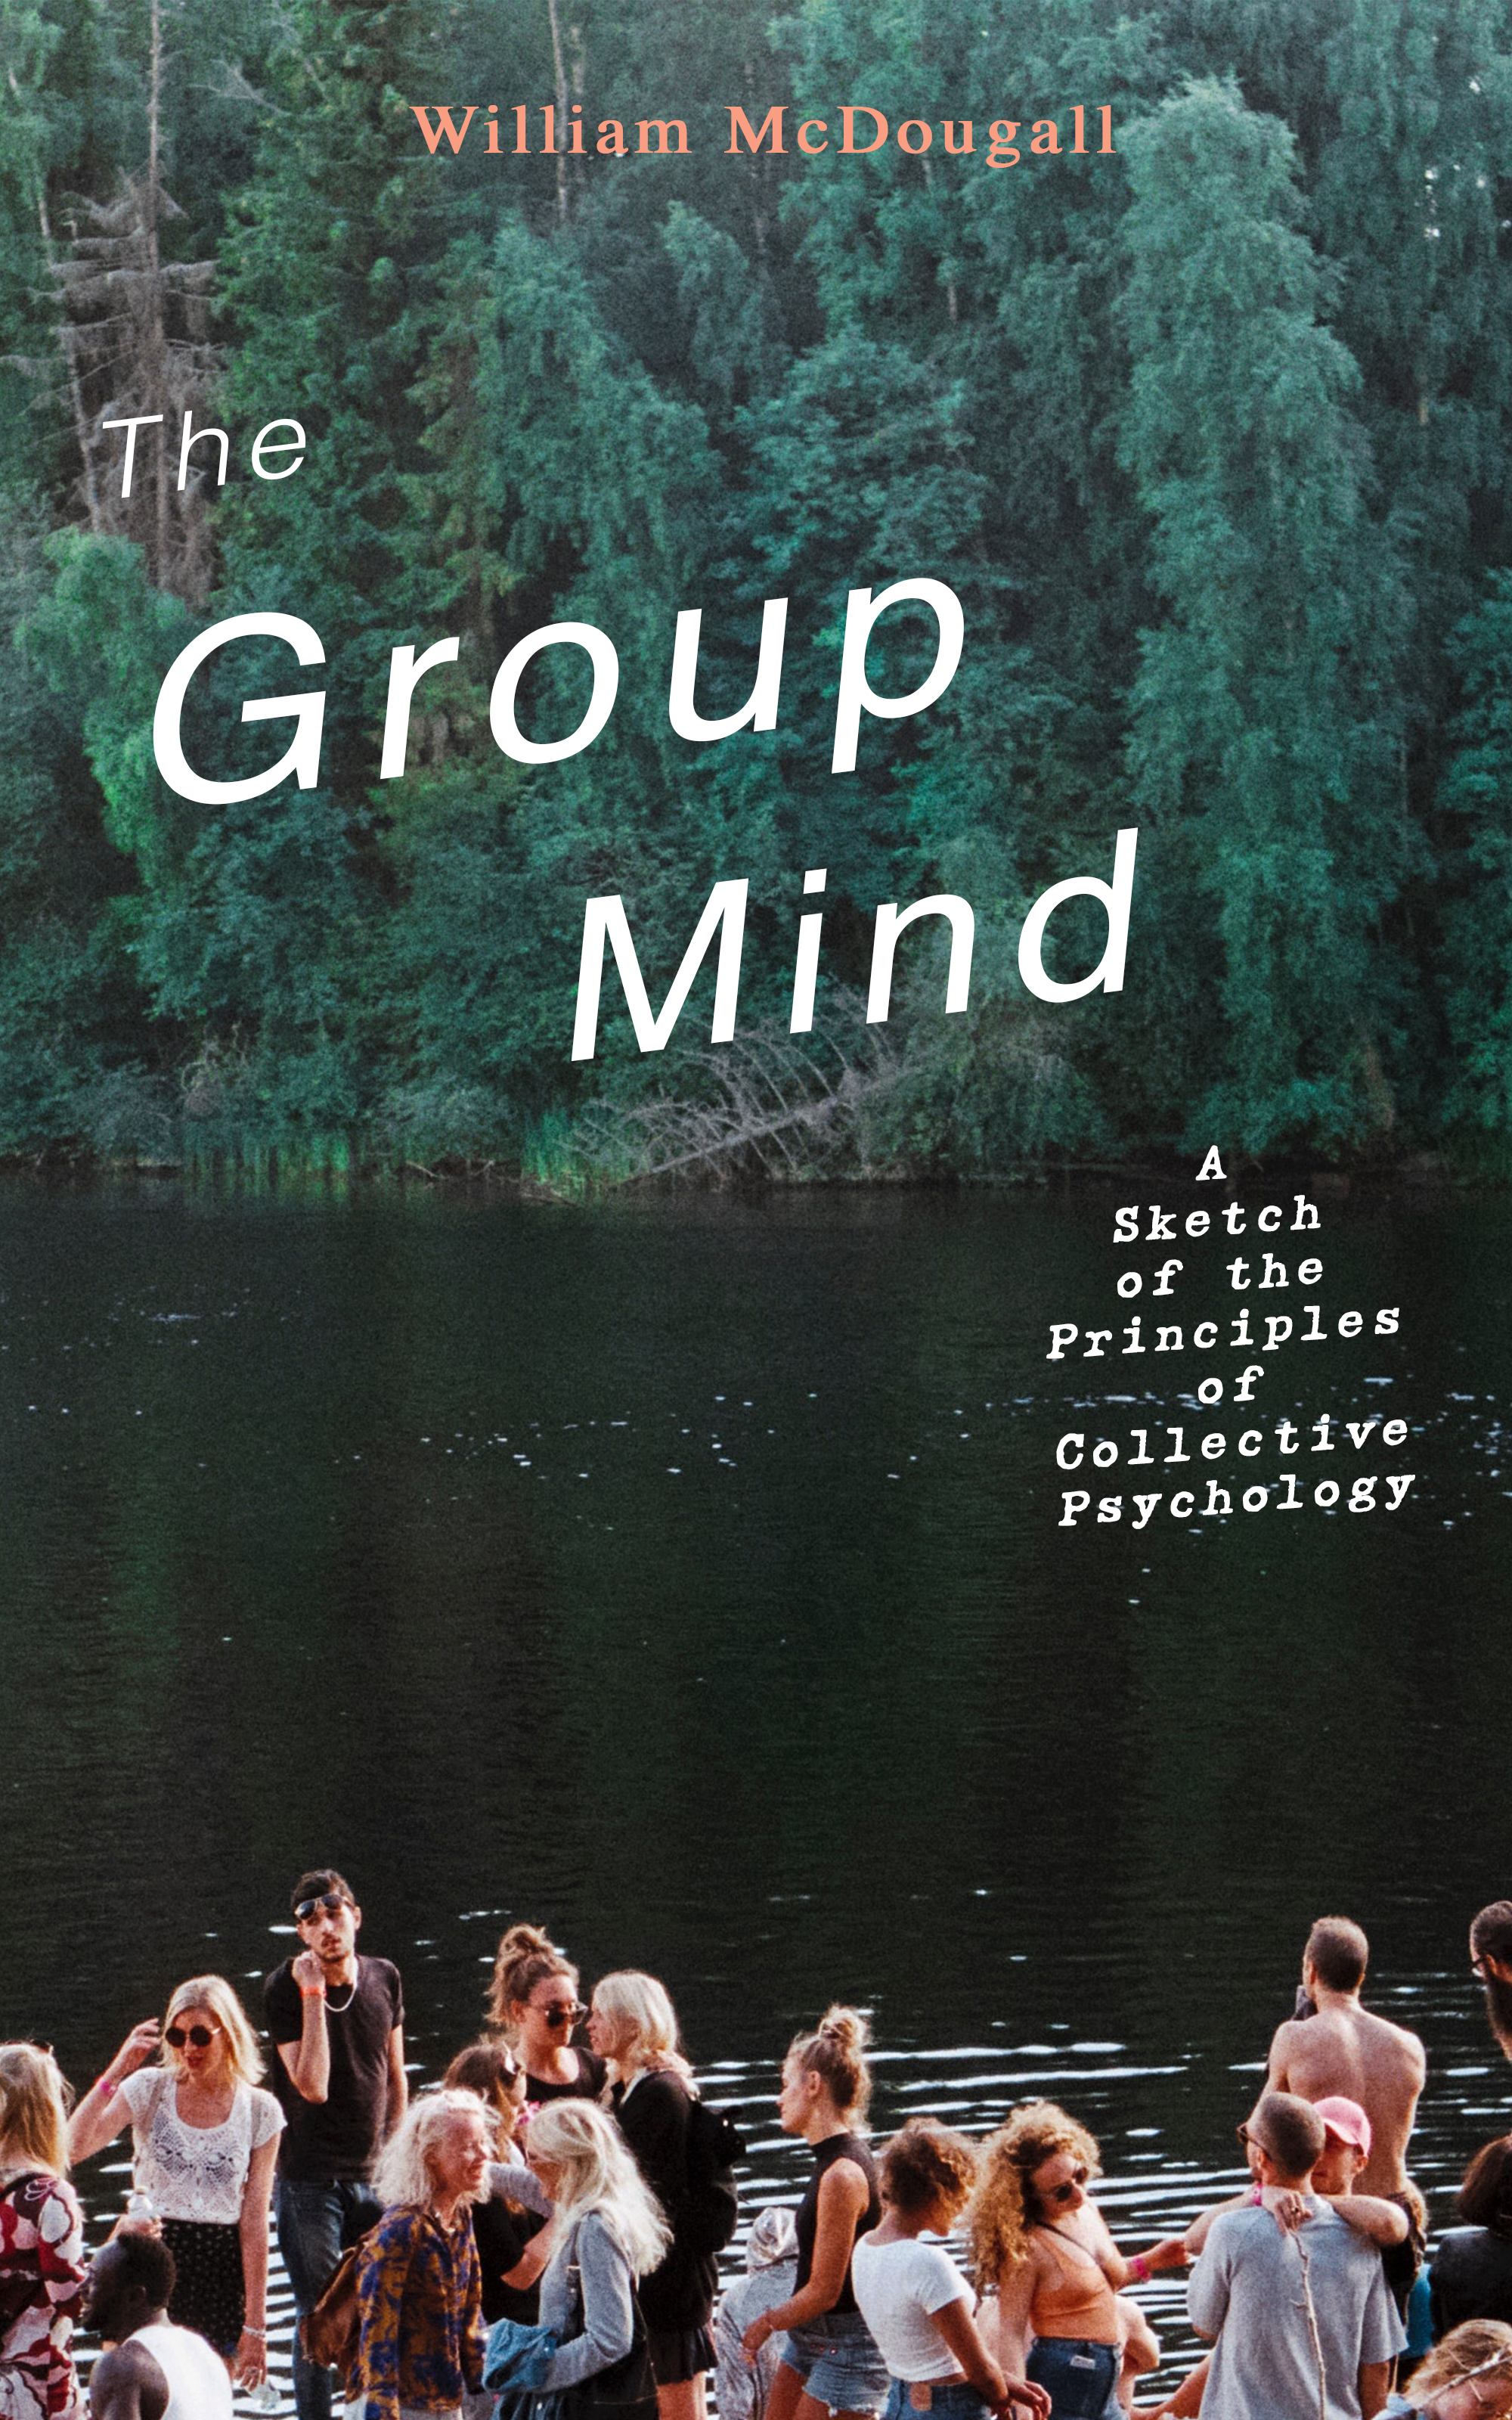 William McDougall The Group Mind: A Sketch of the Principles of Collective Psychology james william the principles of psychology volume 2